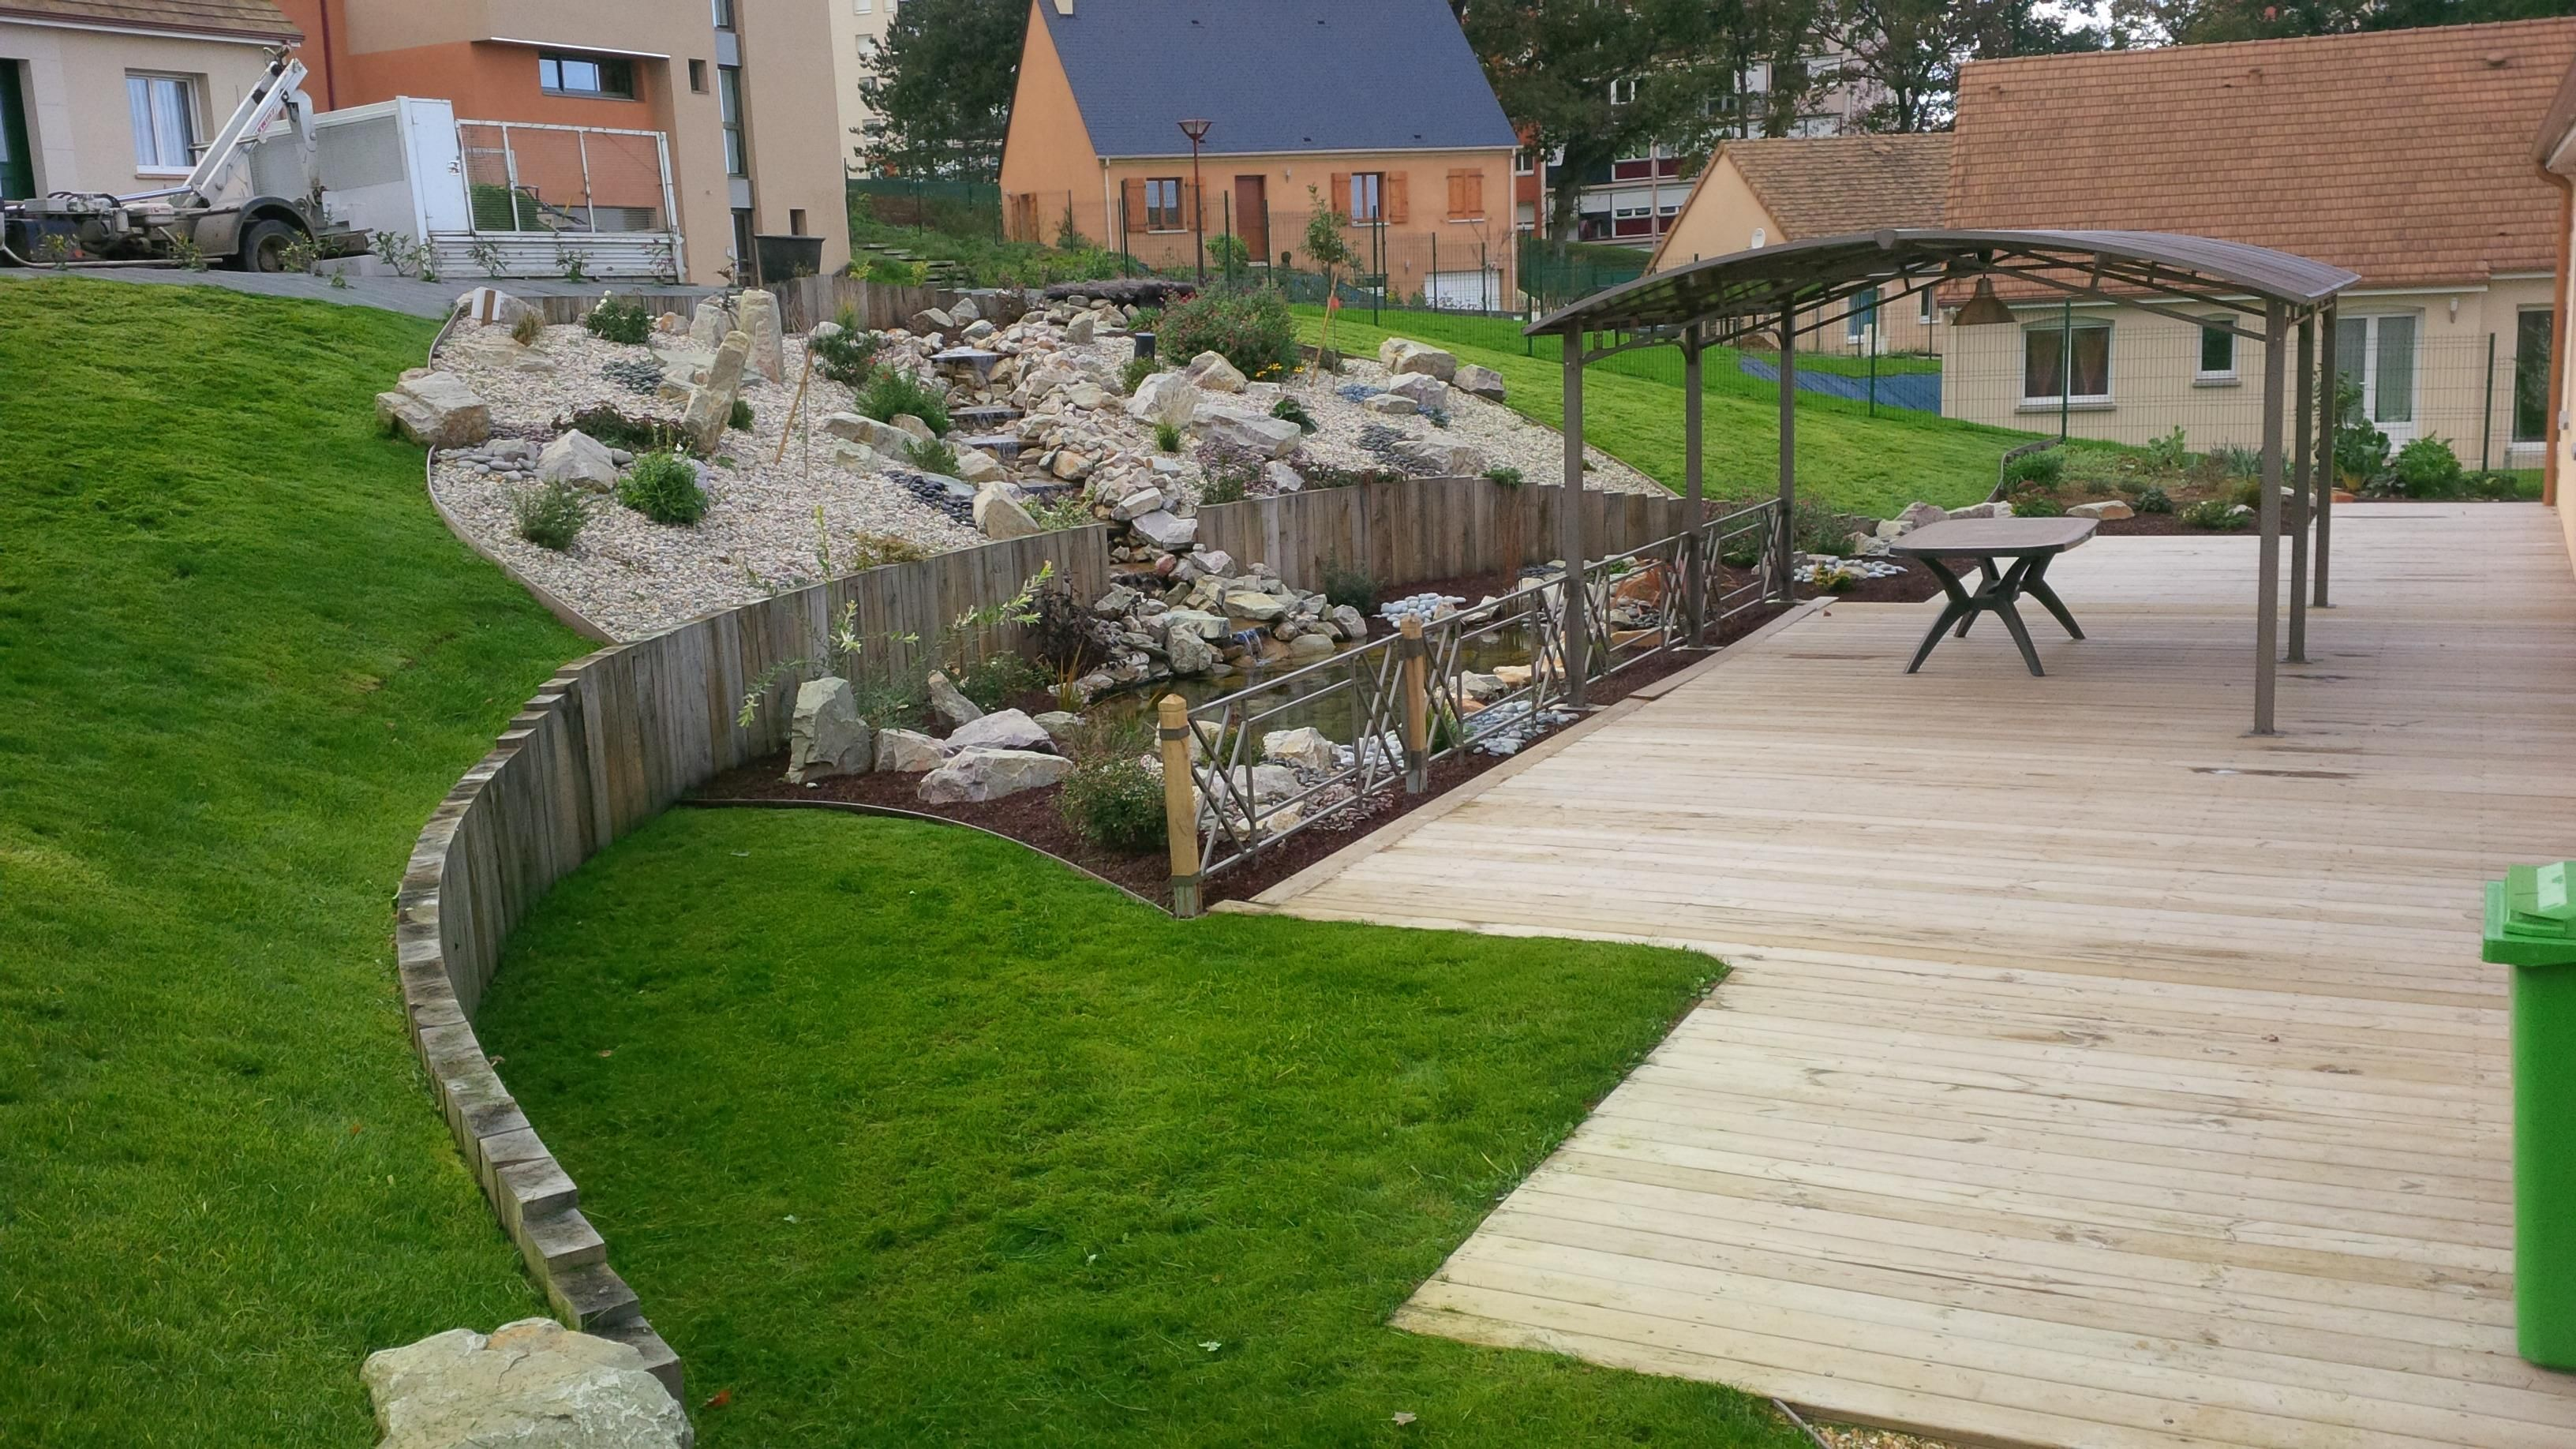 Jardin en pente id es d co jardin pinterest for Amenagement des jardins